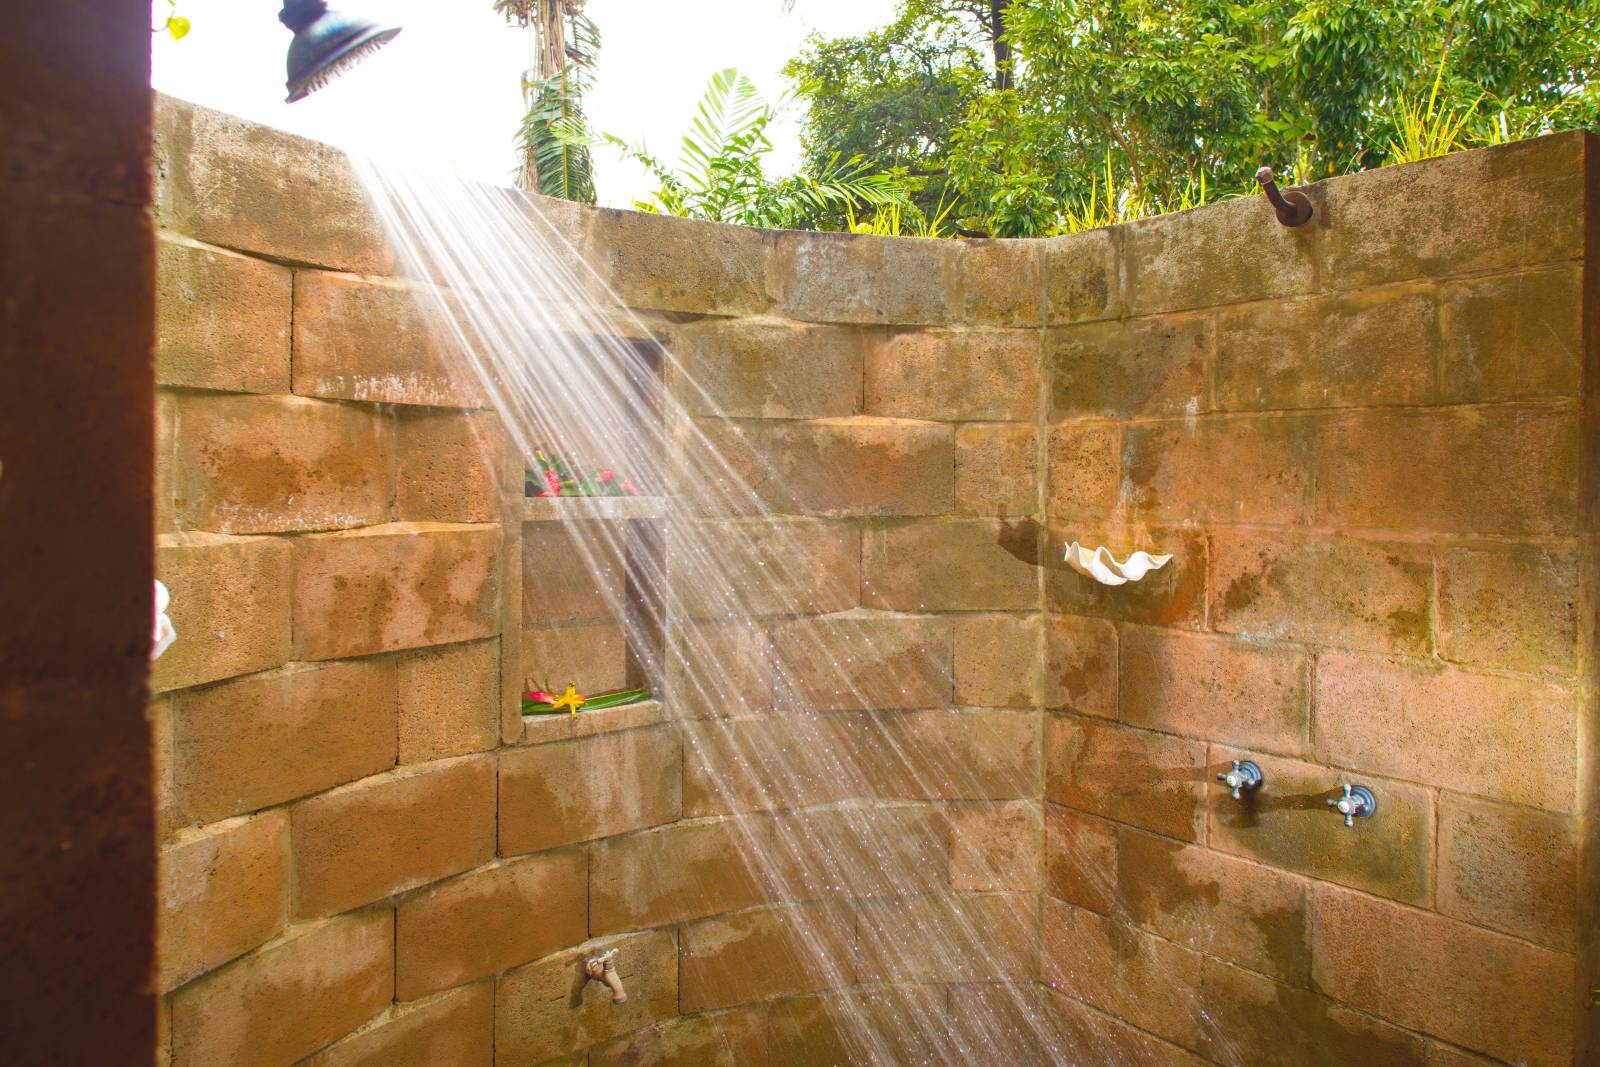 Outdoor shower on ROyal Drive